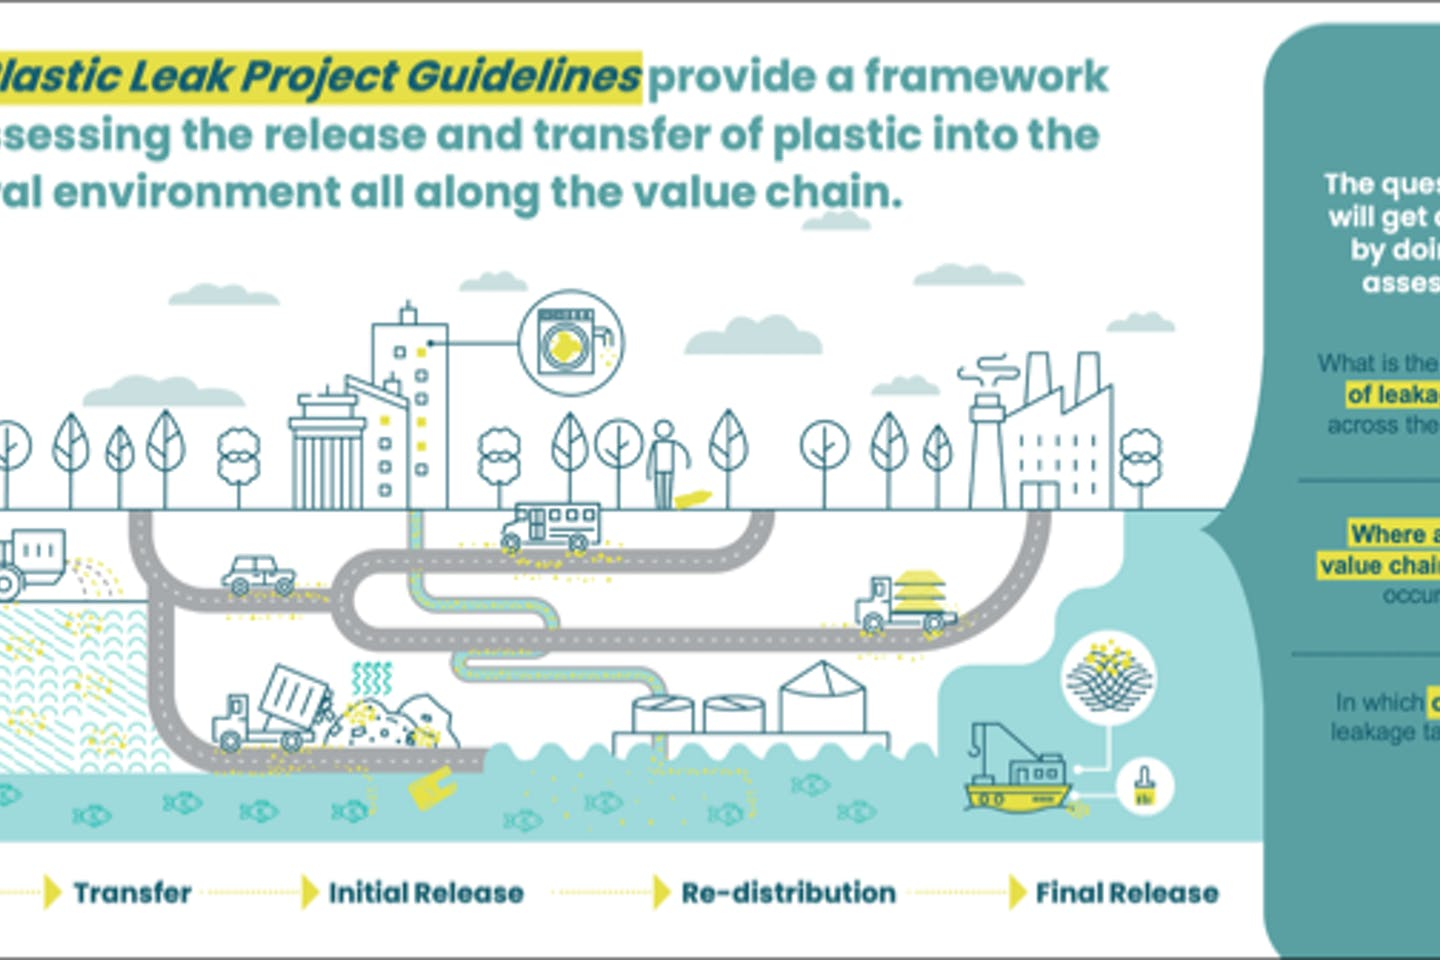 First standardised guidelines to measure plastic pollution in corporate value chains published by the Plastic Leak Project